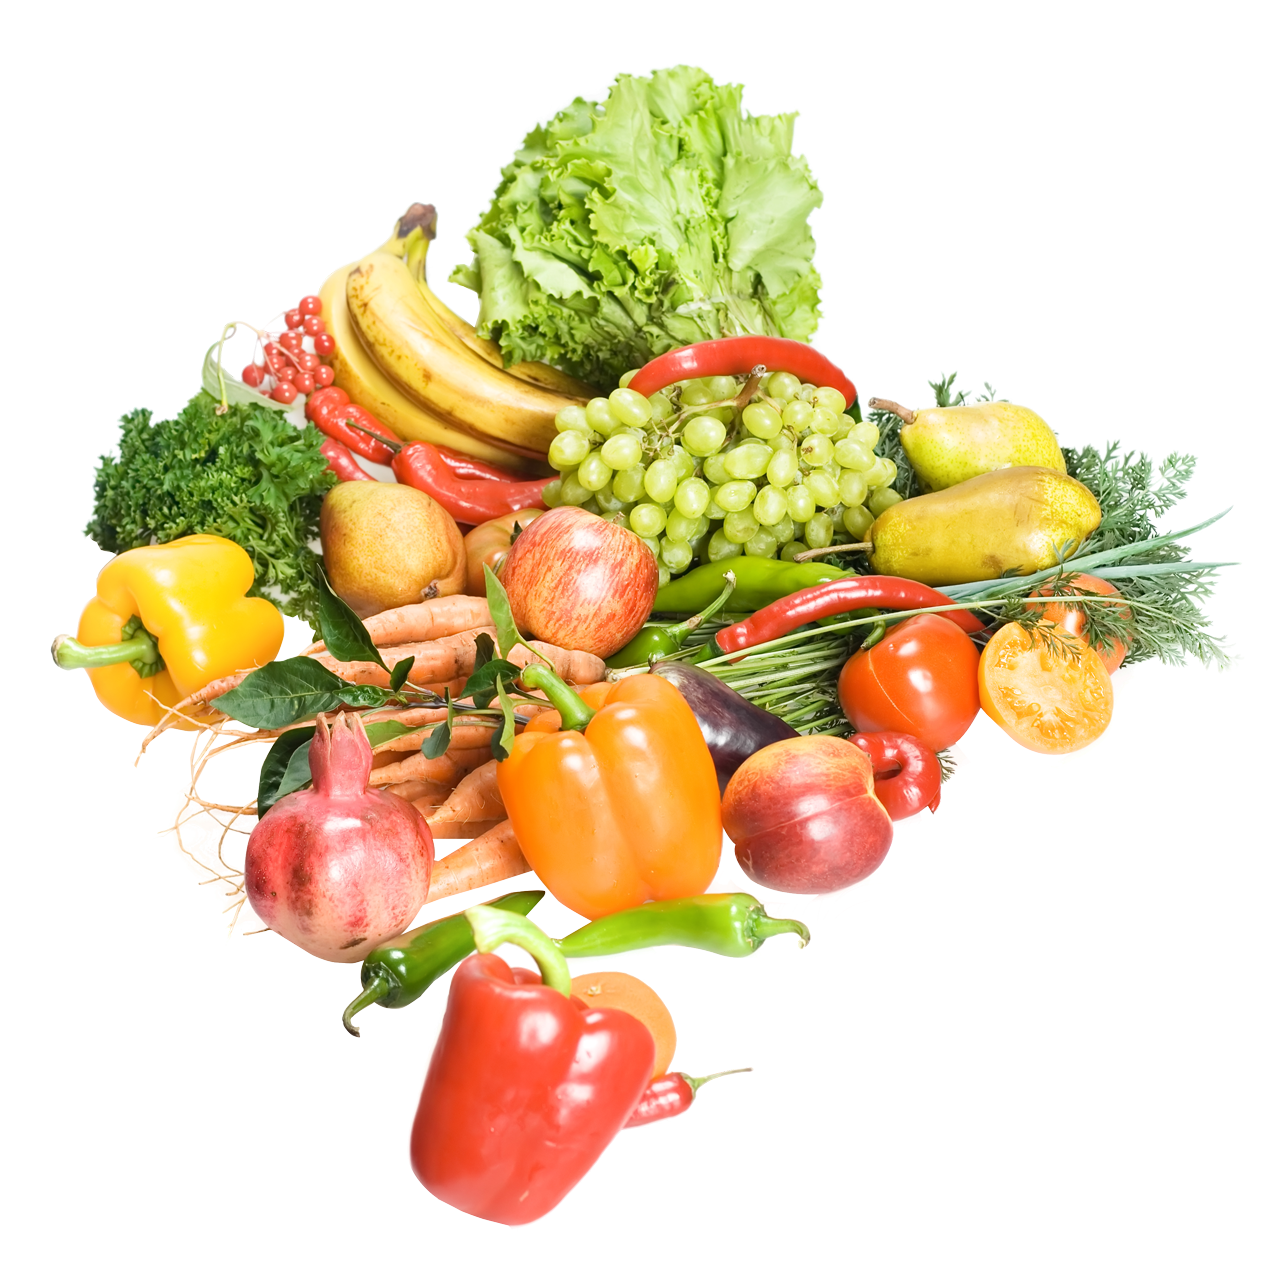 Vegetables image purepng free. Fruits and veggies png picture black and white library